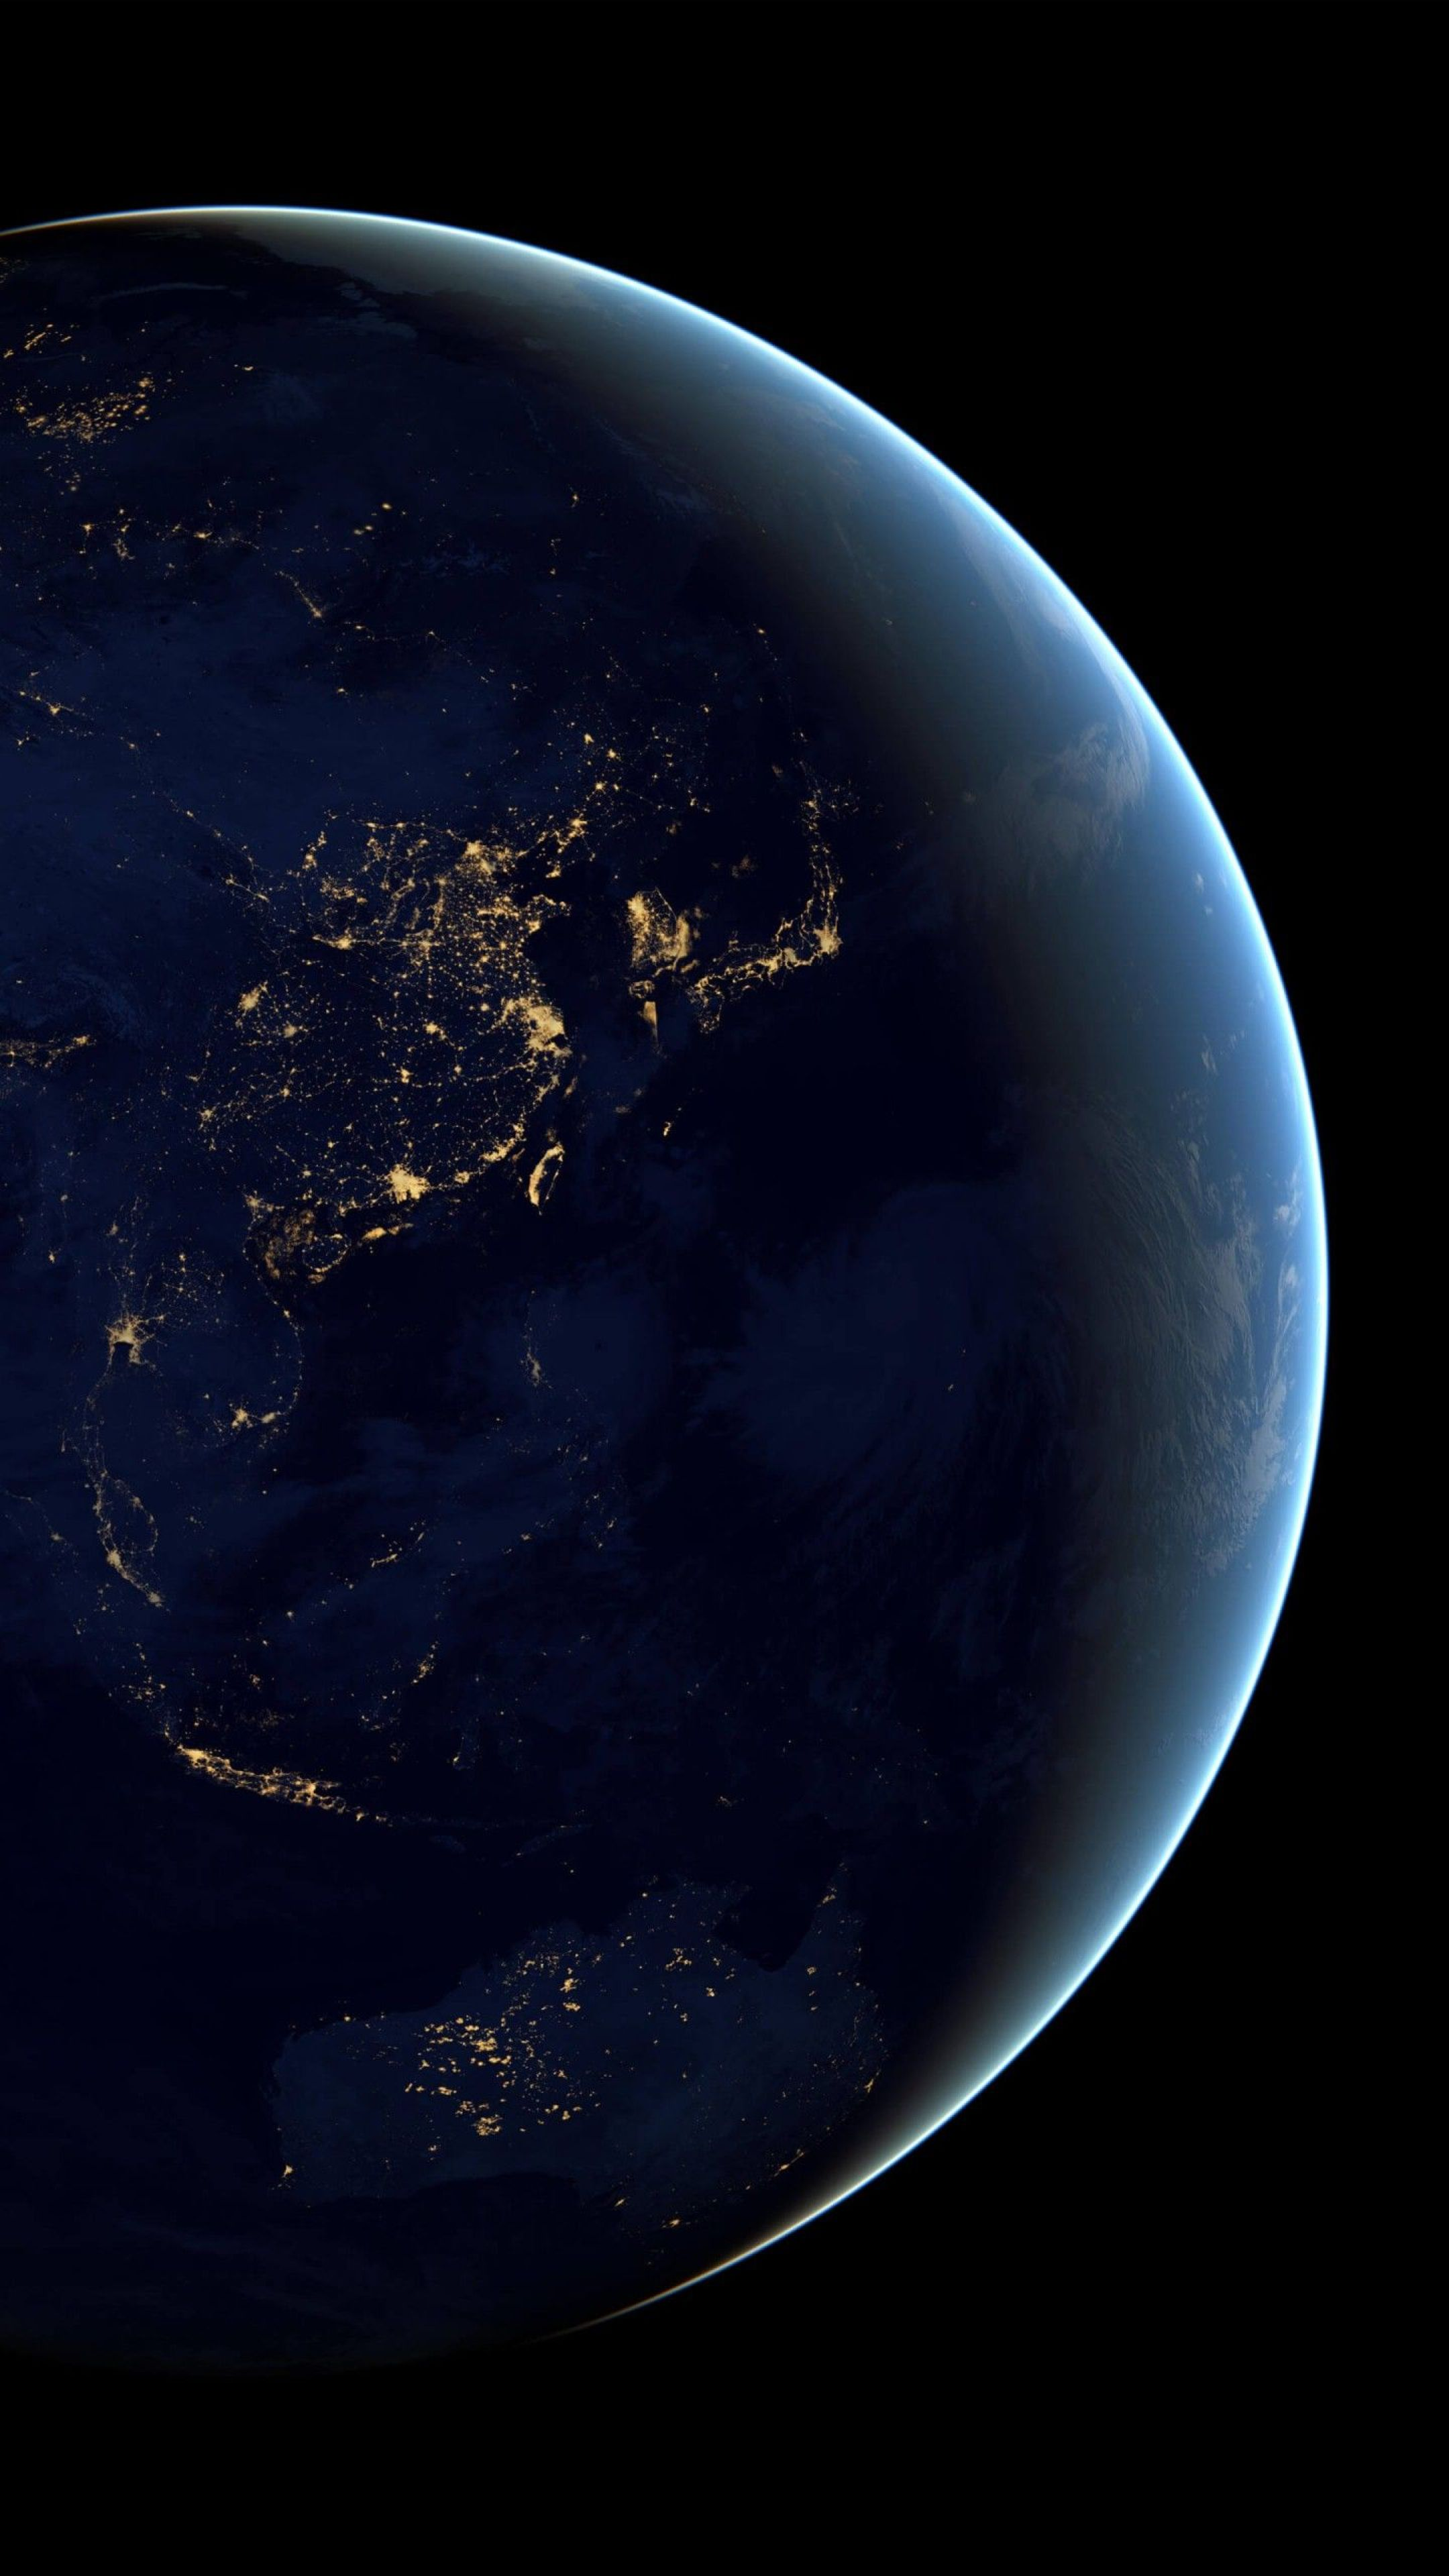 Earth From Space Mobile Wallpaper Picture Image 2160x3840